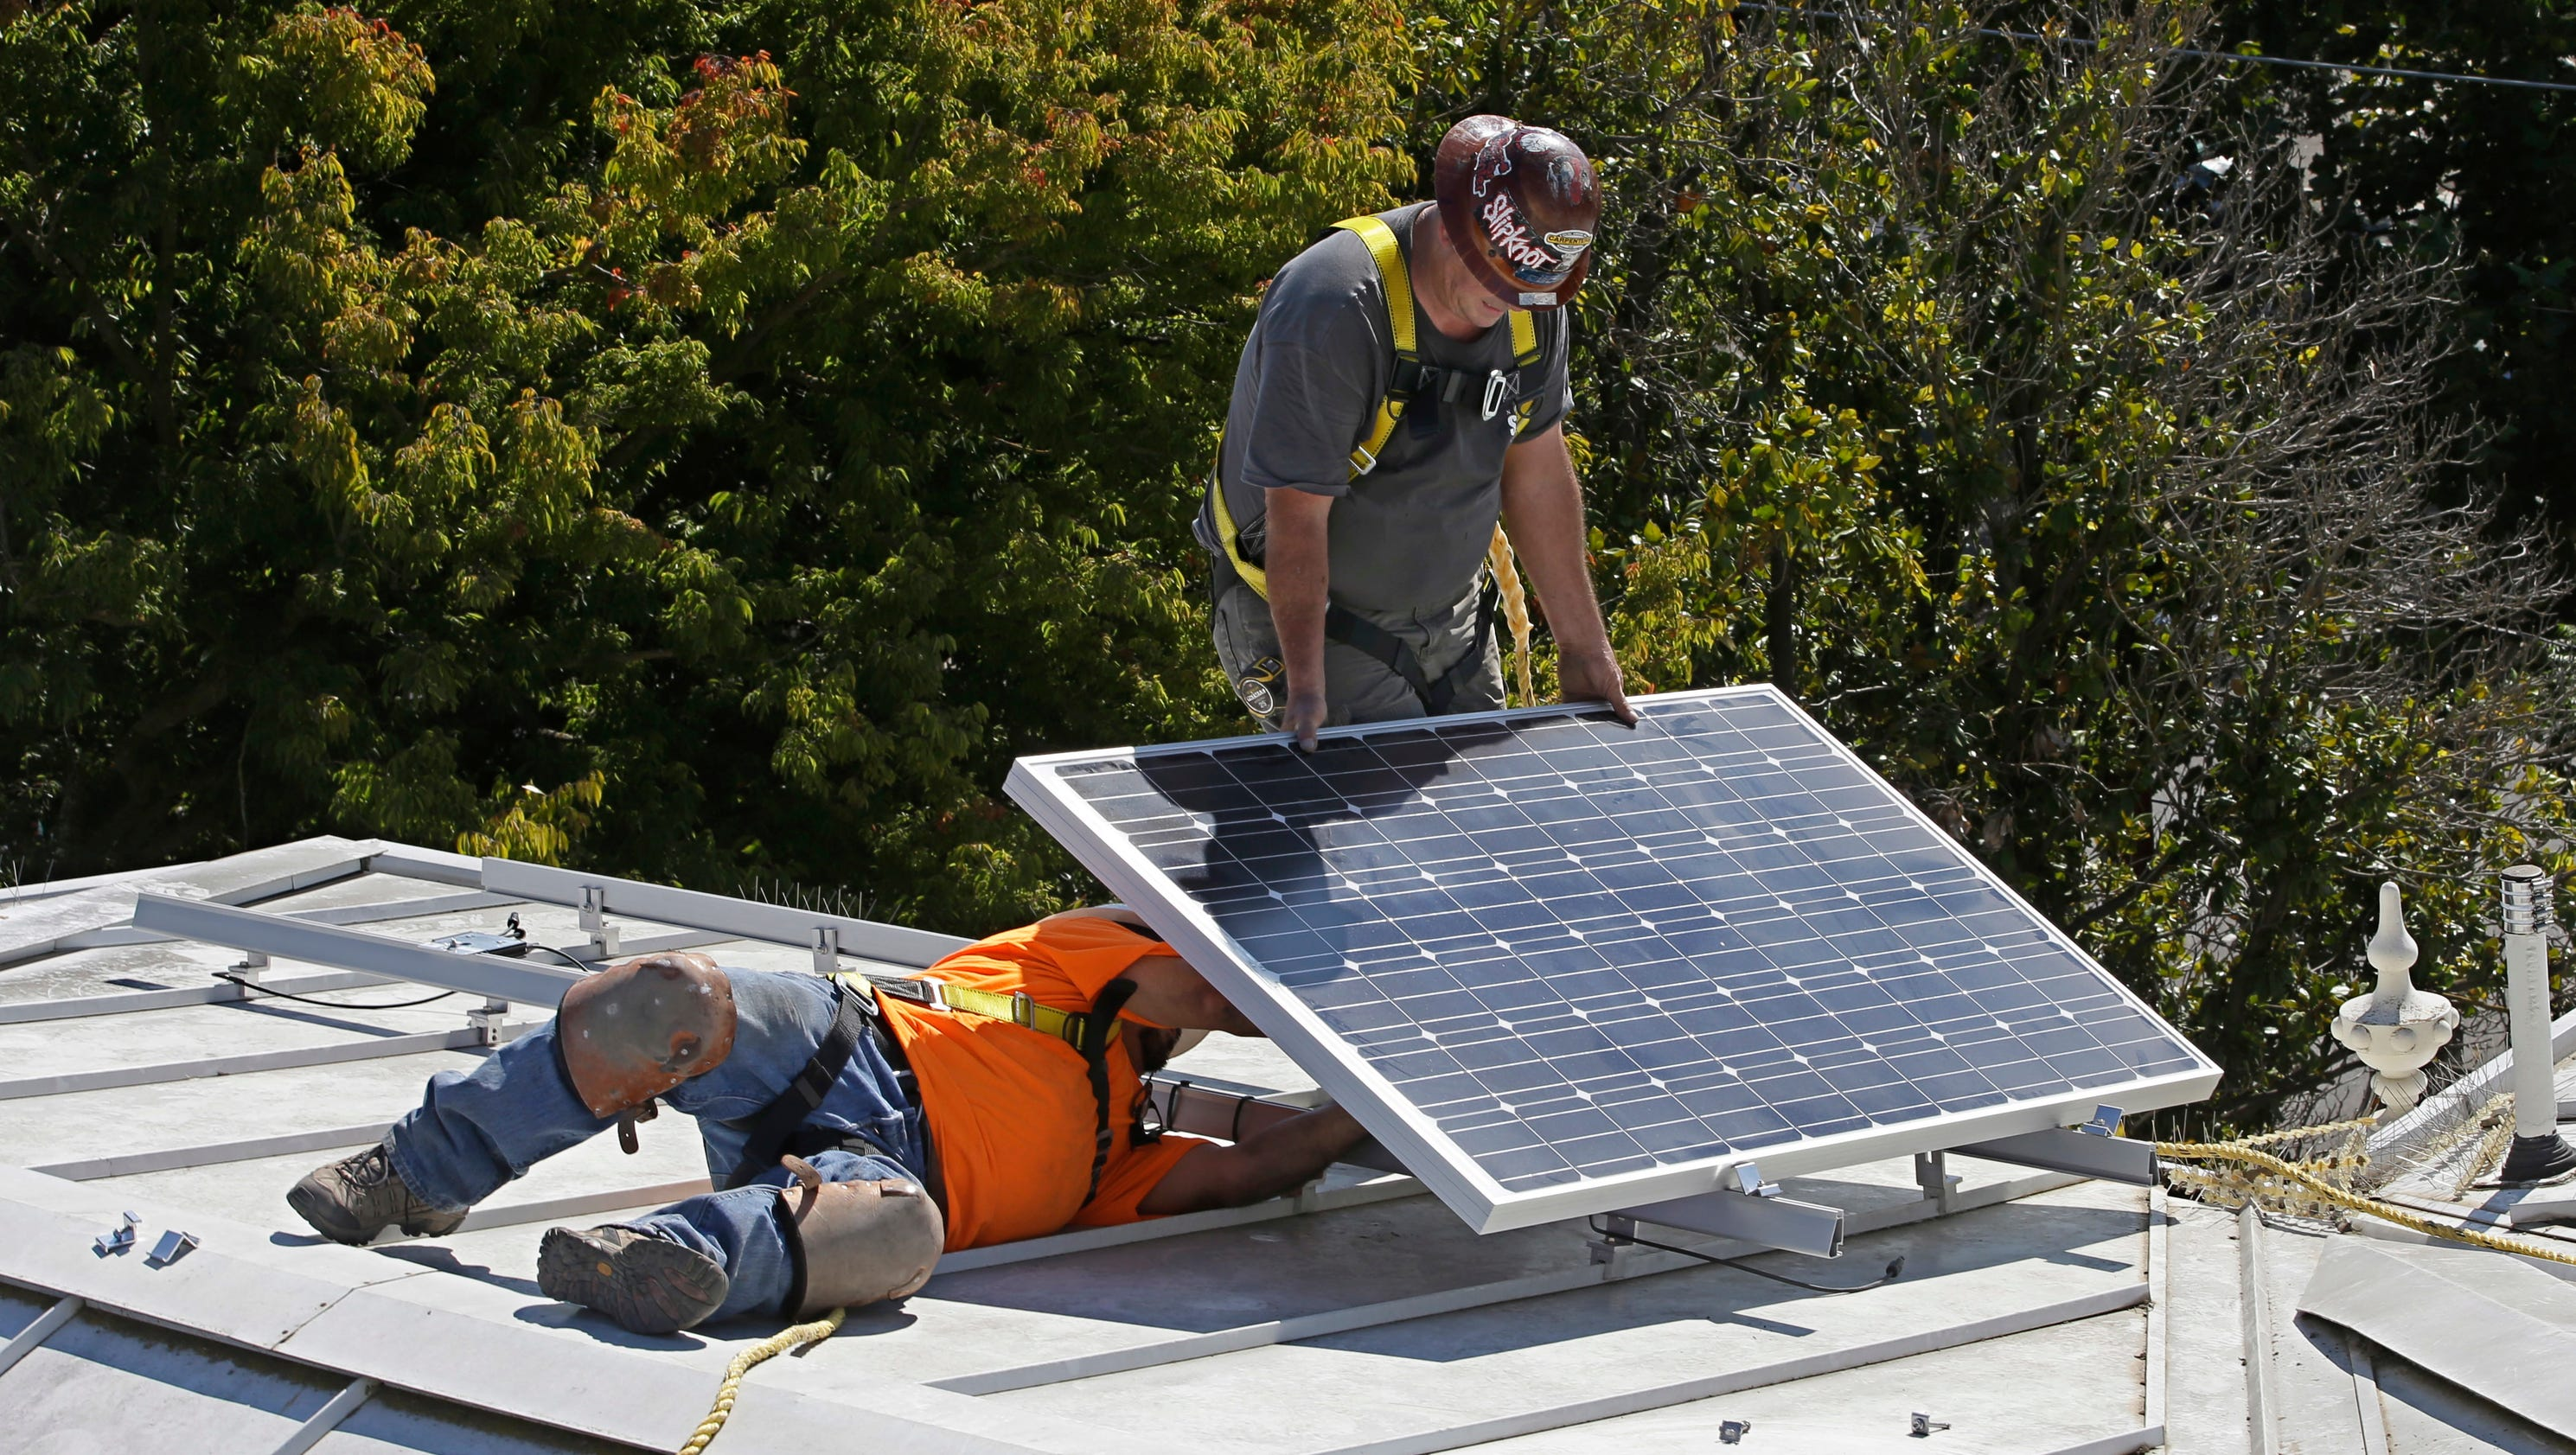 California Solar Panels State To Require Them On New Homes